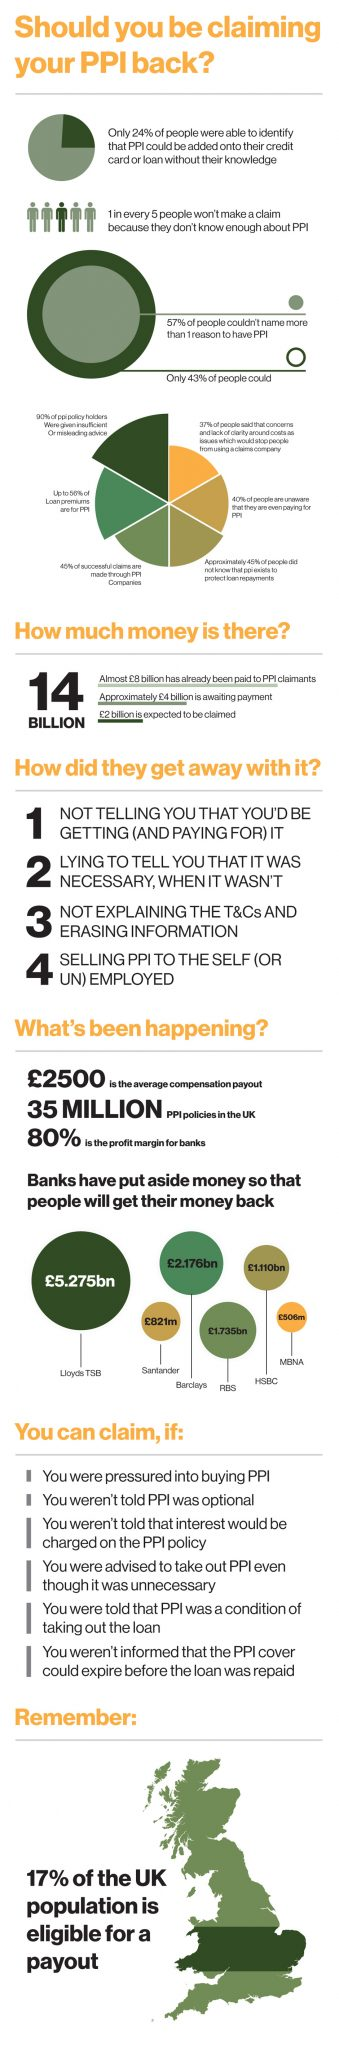 Claim back your PPI Infographic